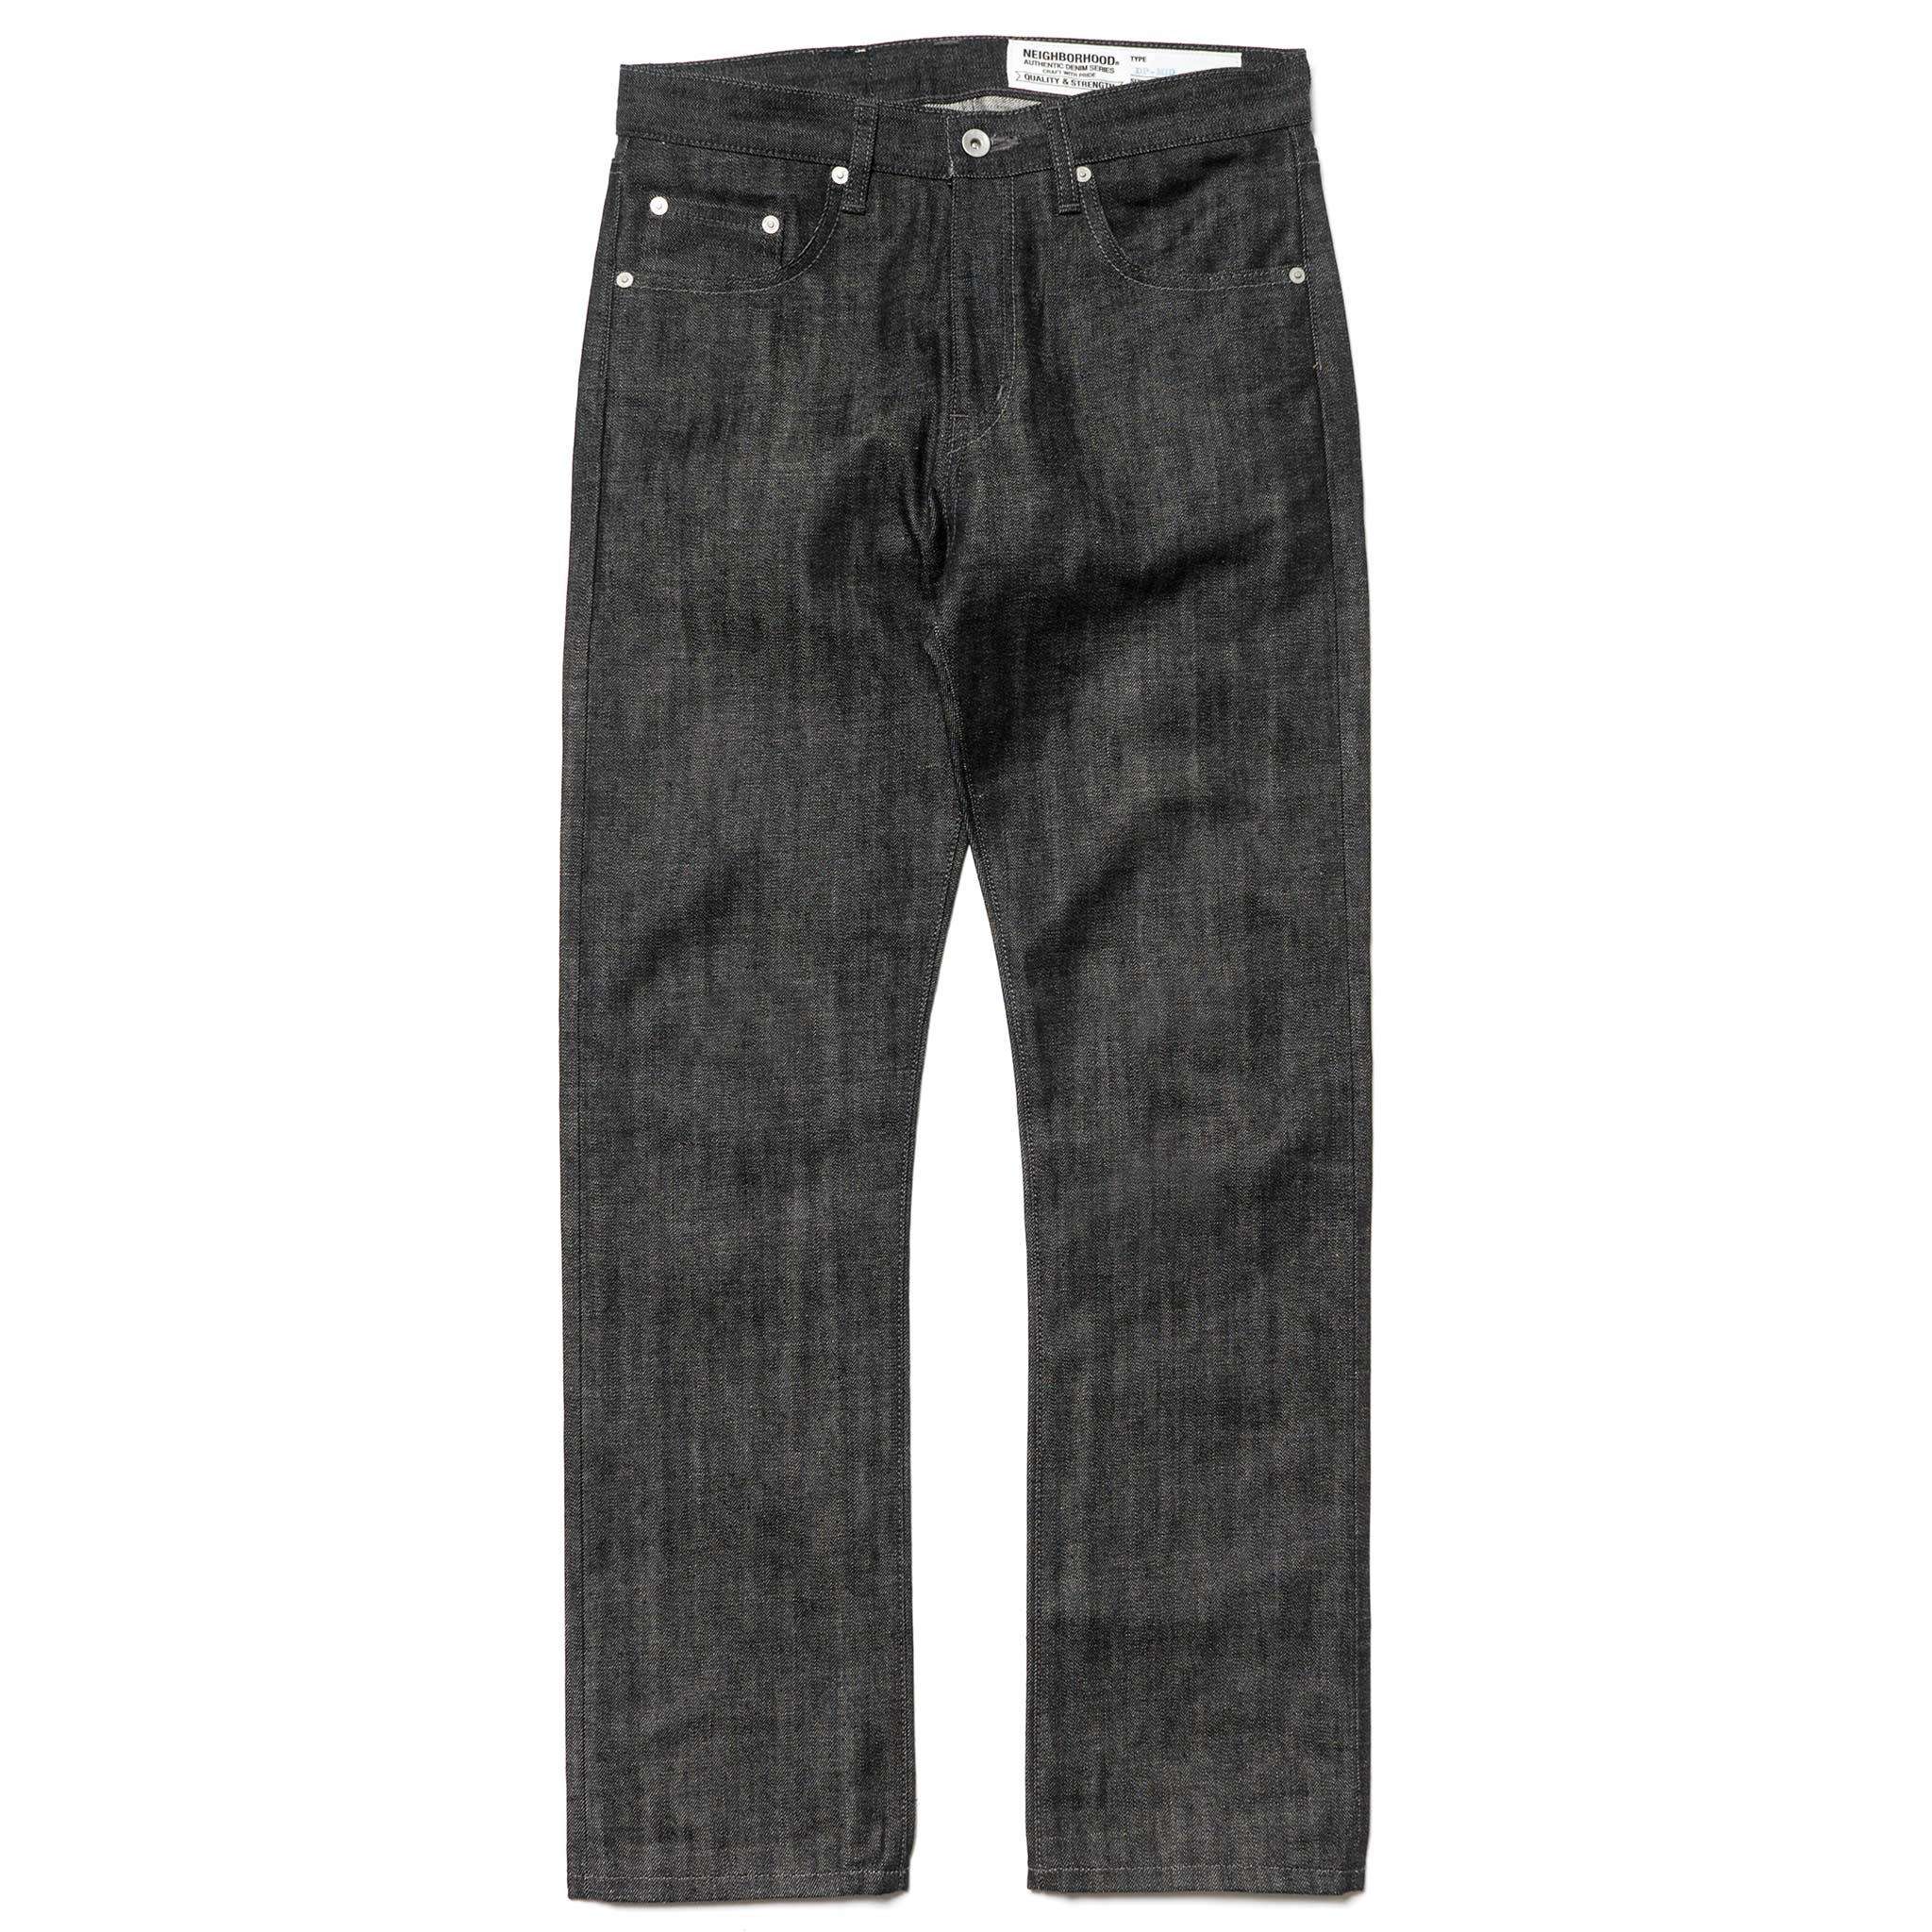 Dp mid 14oz pt black haven